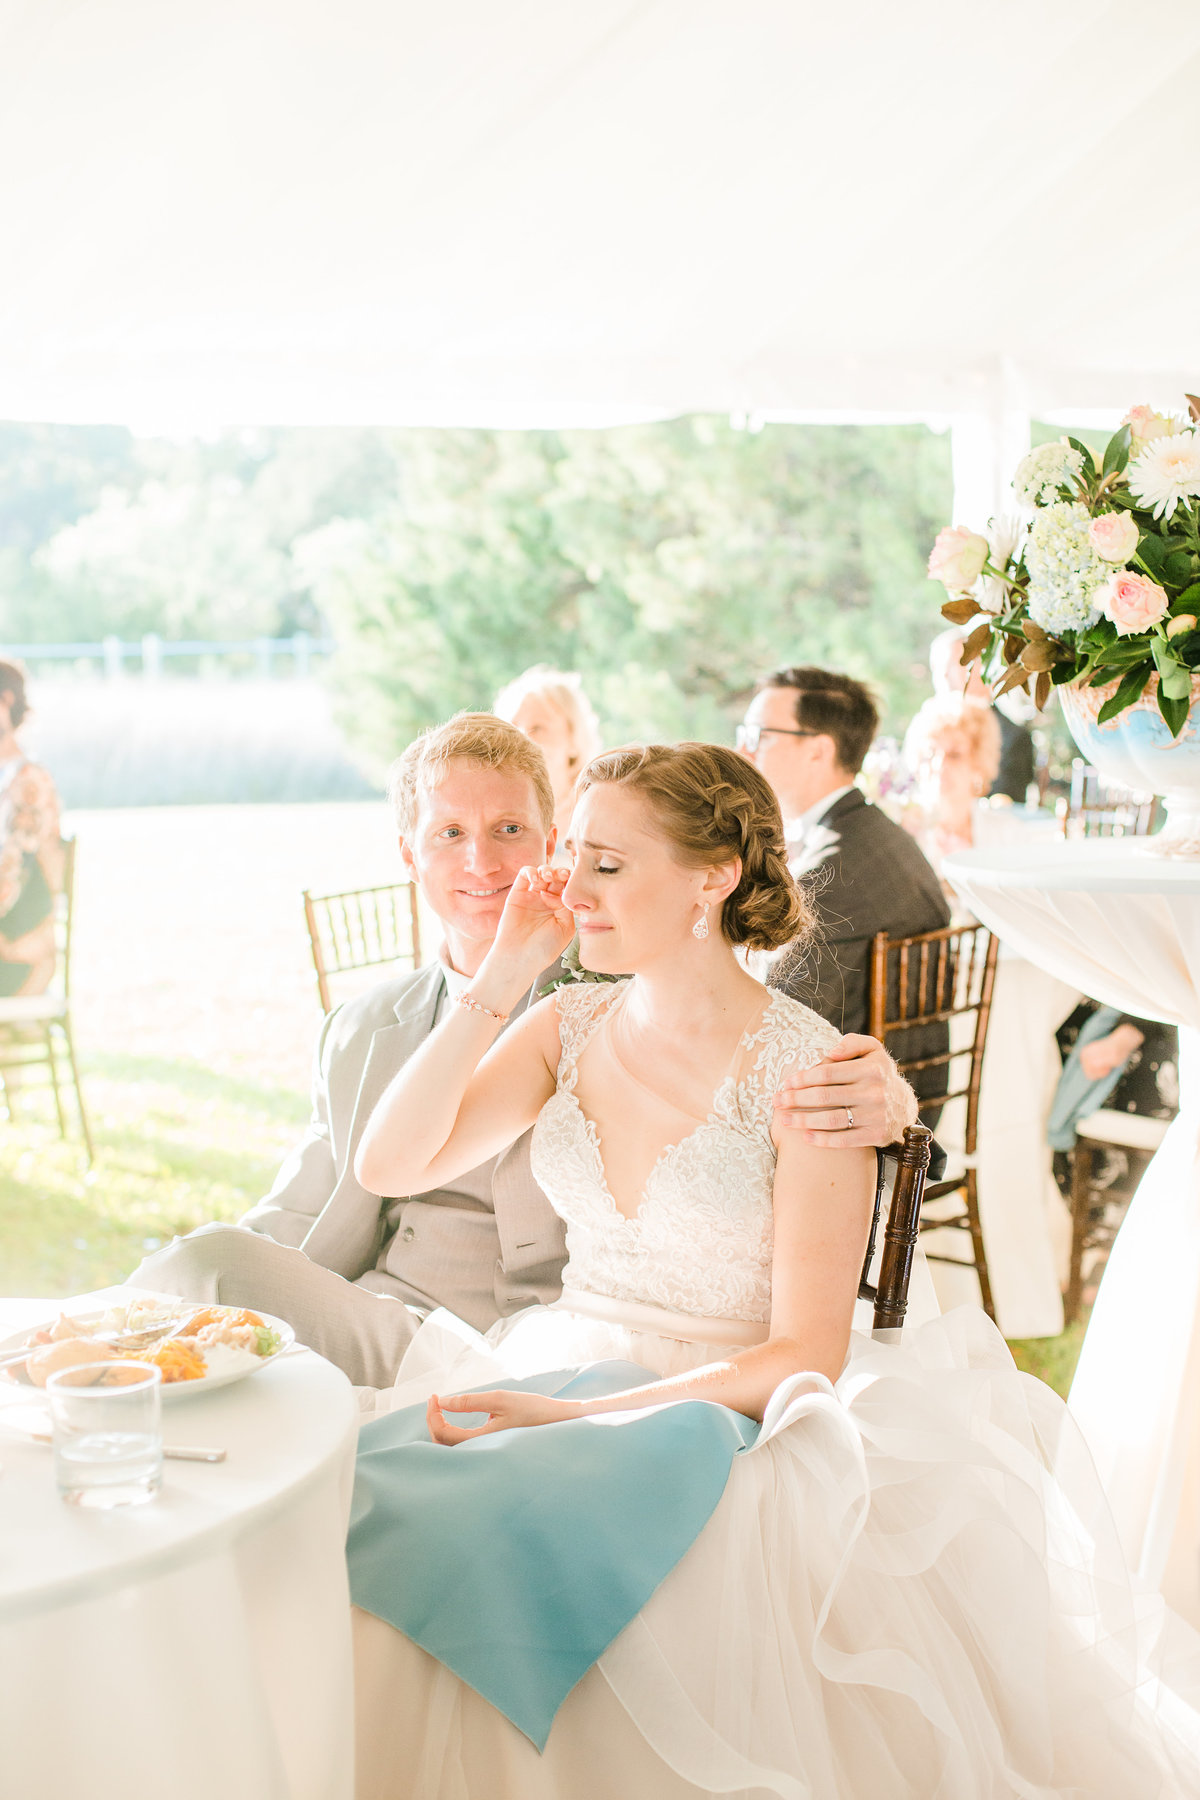 Charleston Weddings- Nancy Lempesis Photography - Wedding Phtography (10)